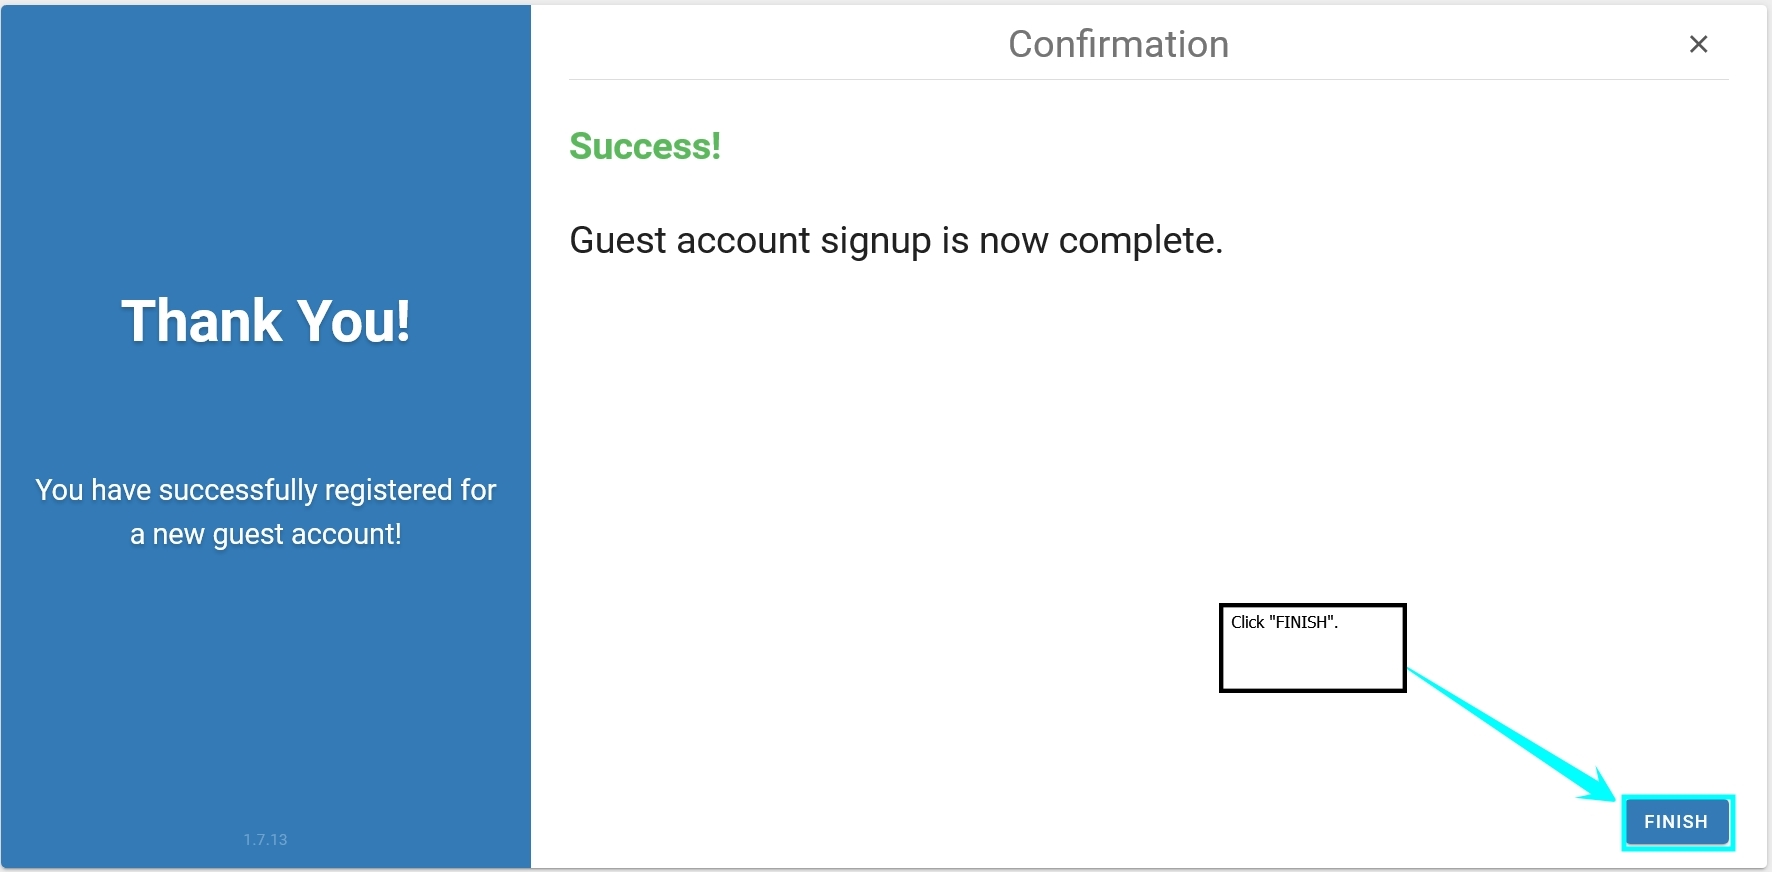 success_signup.png